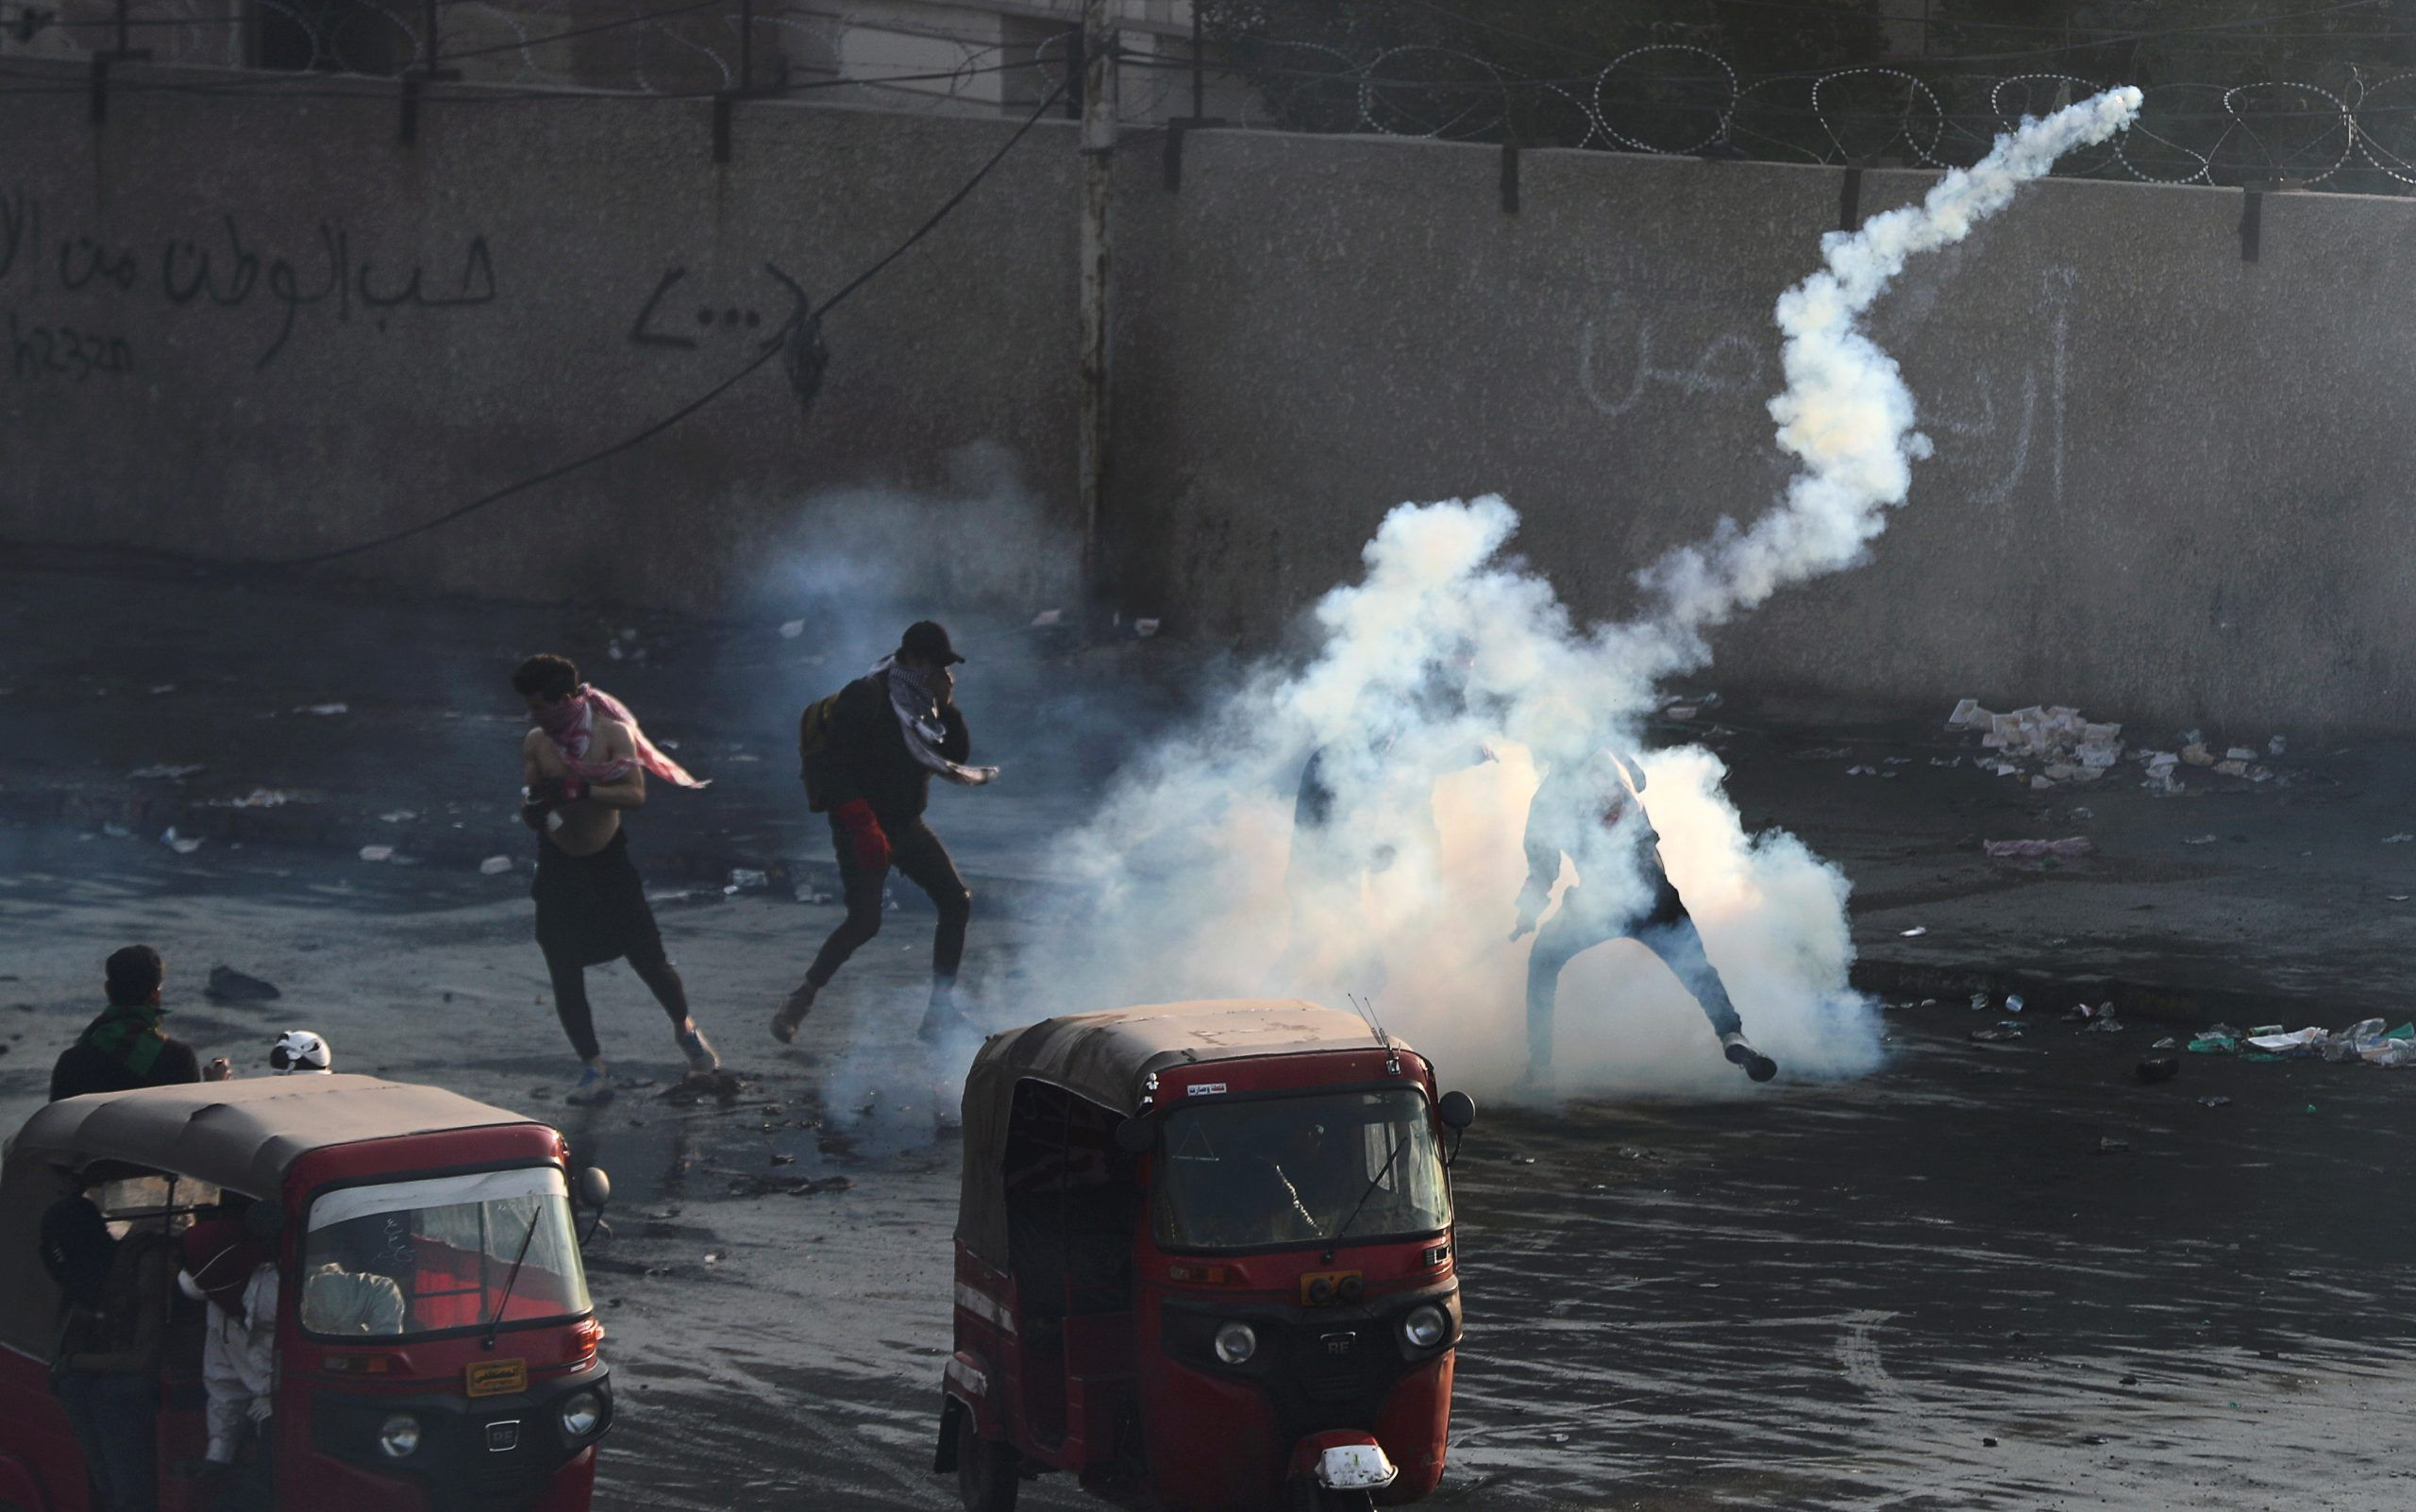 Iraqi demonstrators run from tear gas thrown during ongoing anti-government protests in Baghdad, Iraq January 20, 2020.